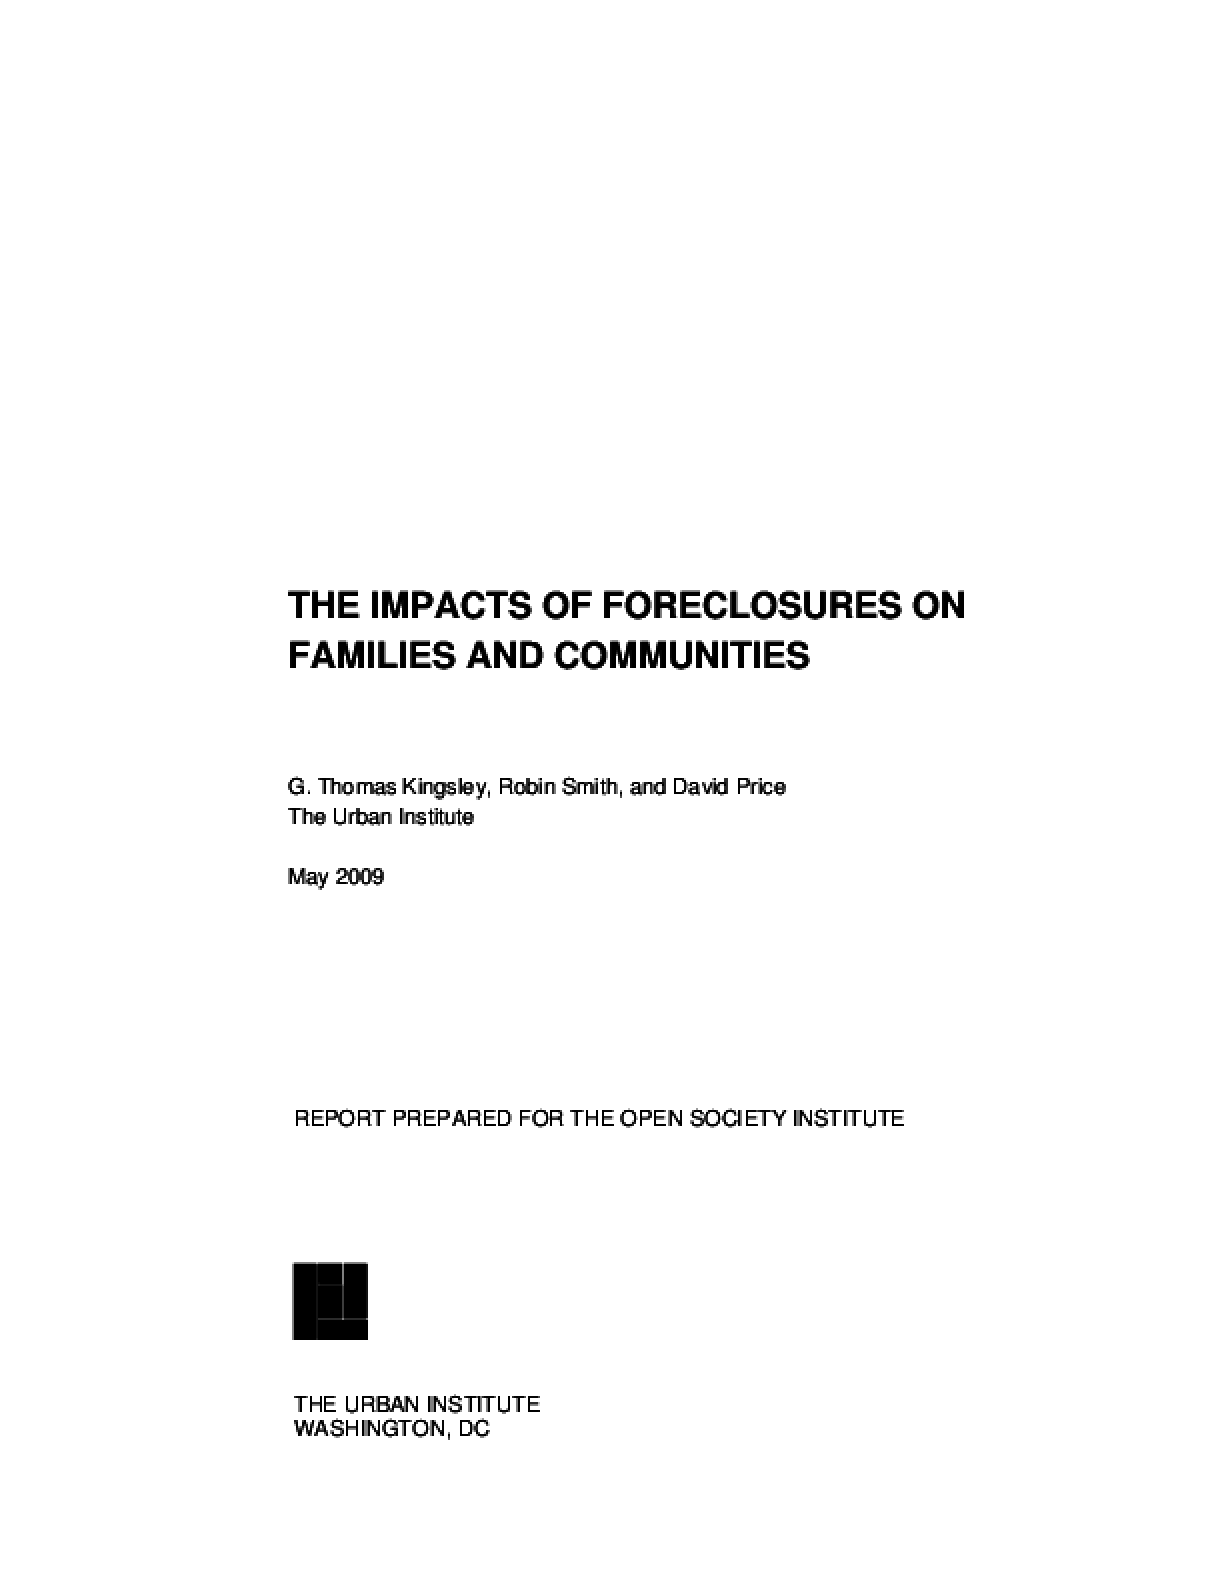 The Impacts of Foreclosures on Families and Communities